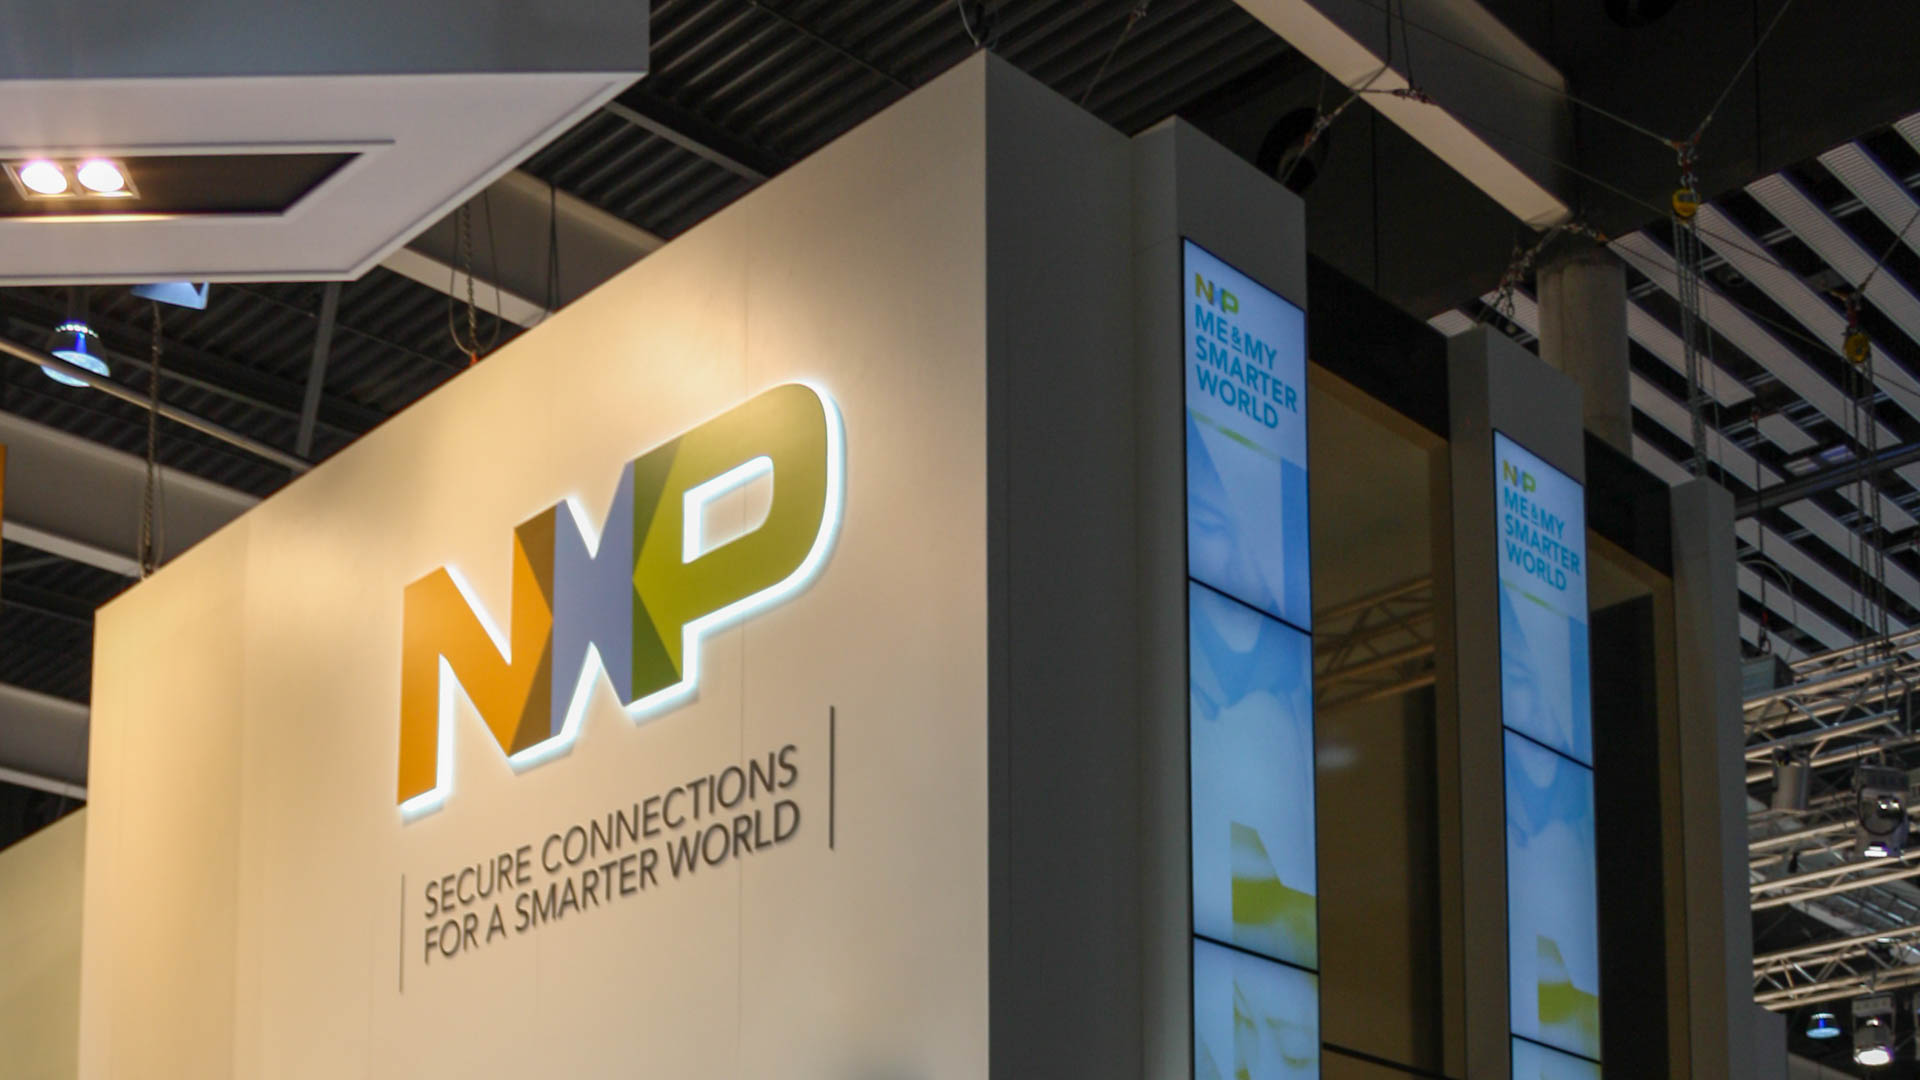 NXP Me & My Smarter World